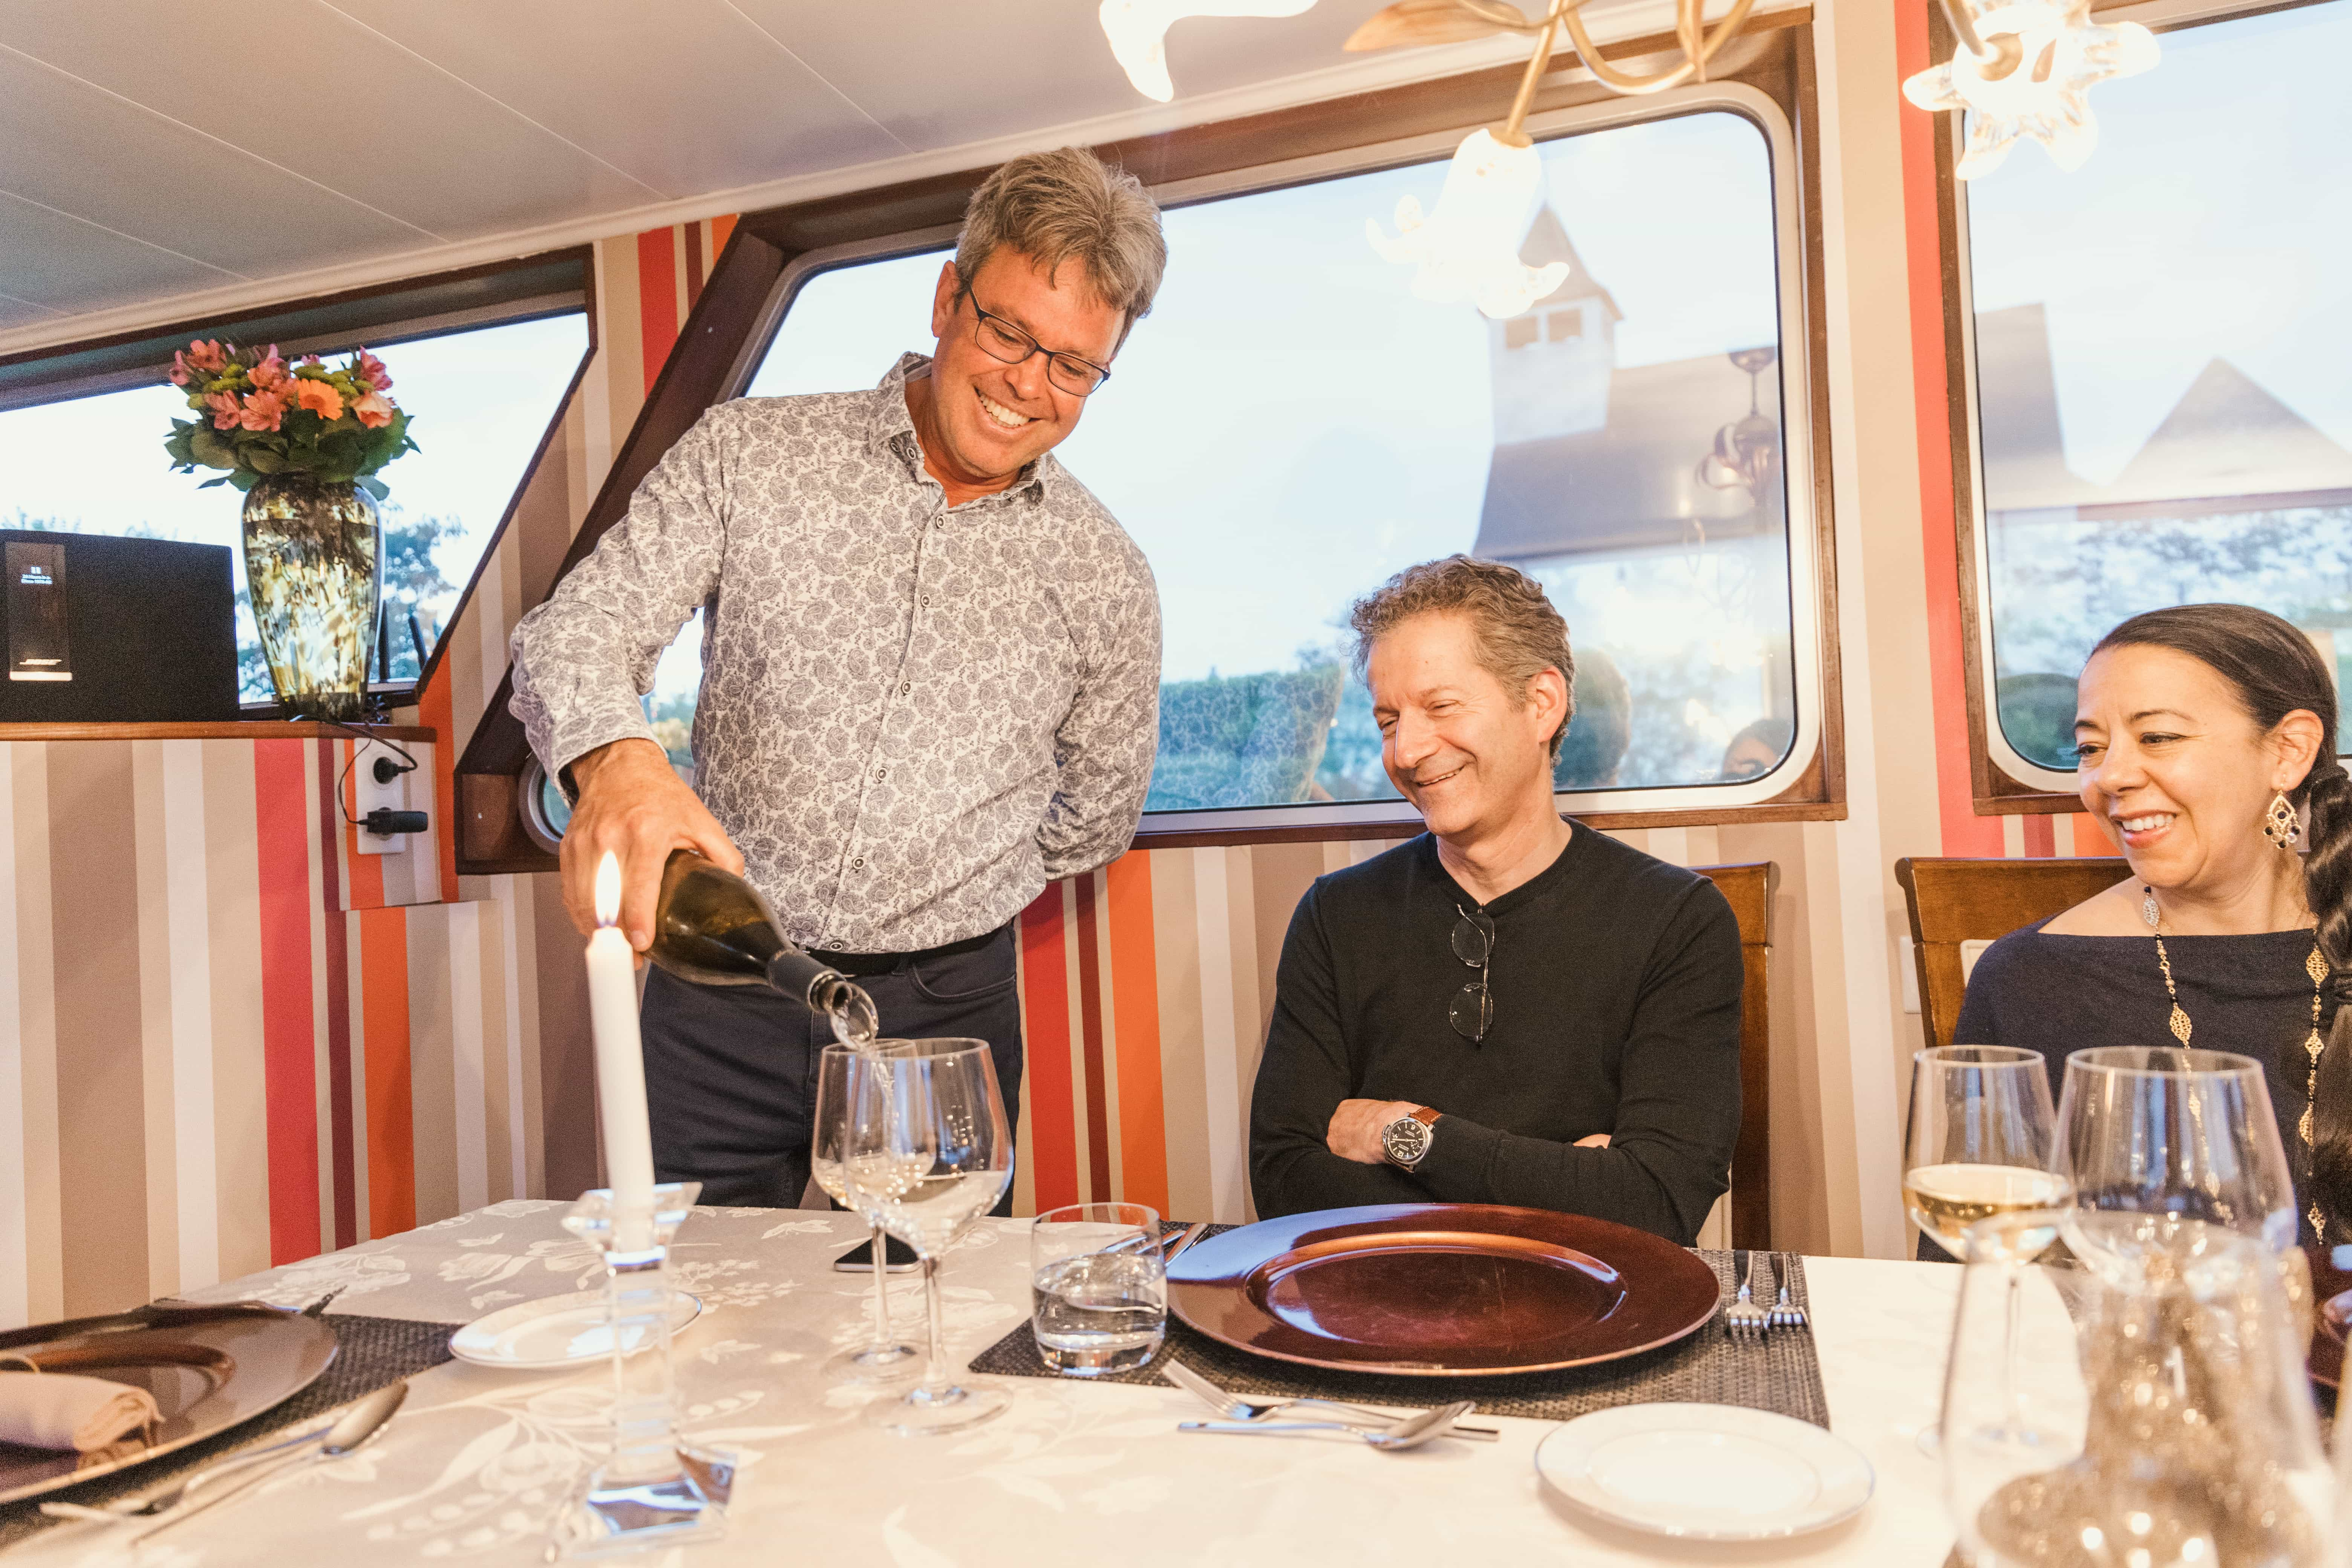 Getting served wine on a French barge cruise